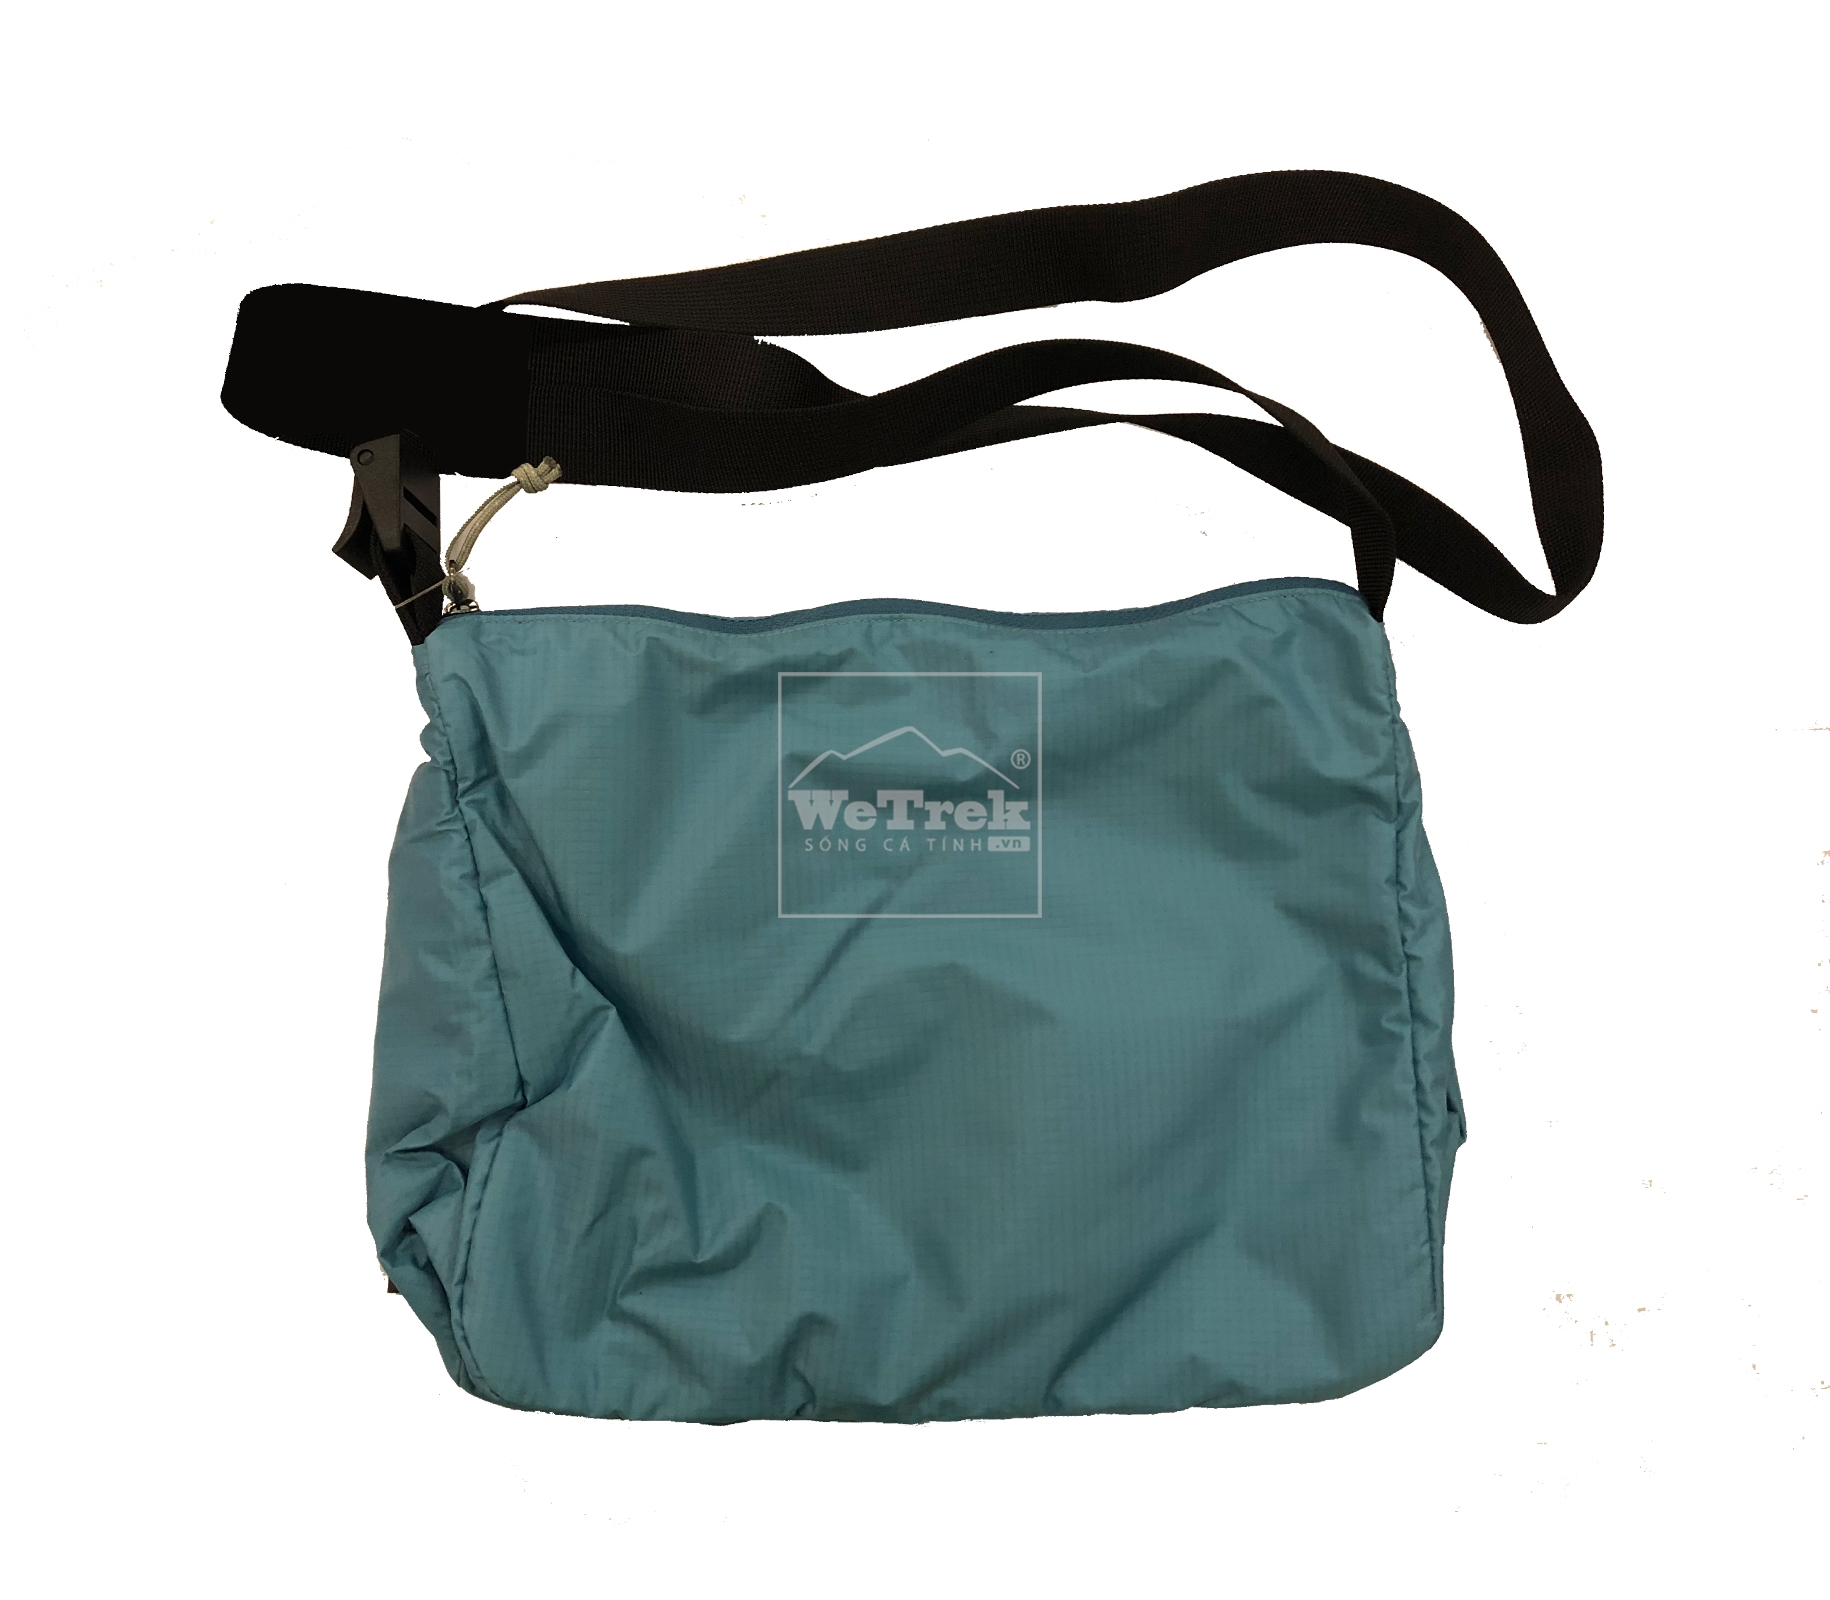 3-tui-deo-cheo-Weather-Guide-Shoulder-Bag-CA-0019-8299-wetrekvn.jpg